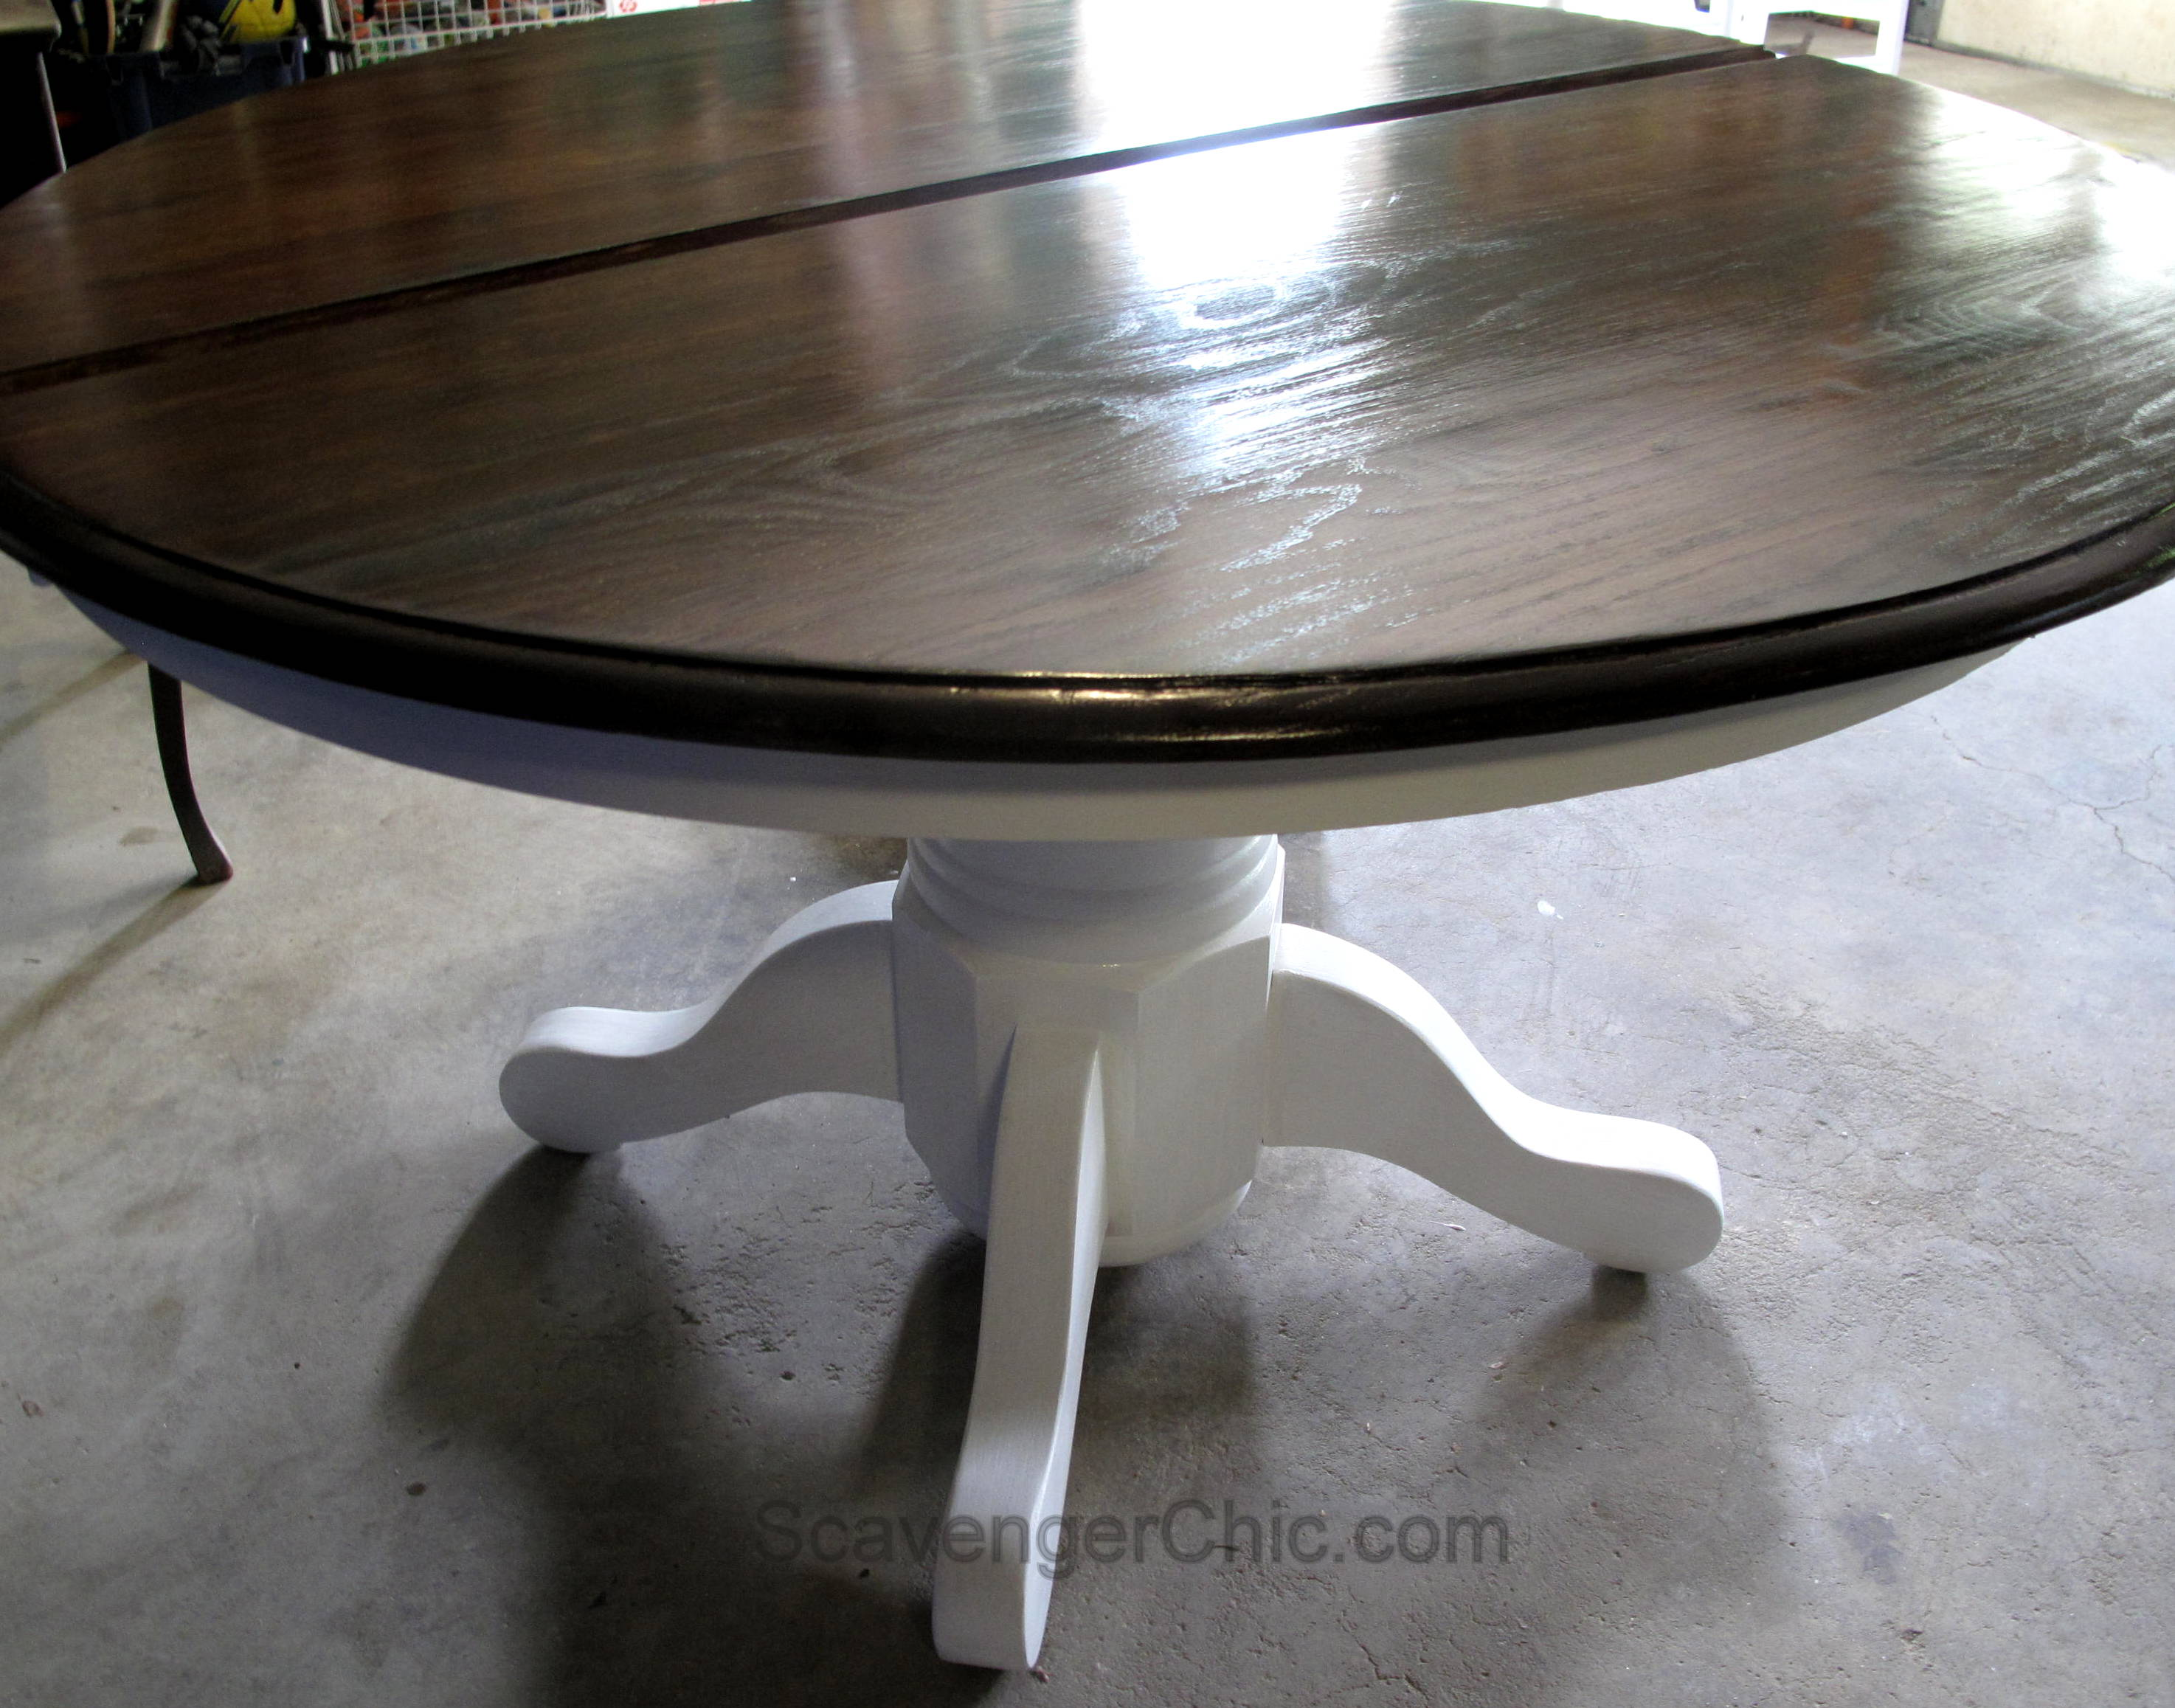 Pedestal Table and Chairs Makeover Scavenger Chic